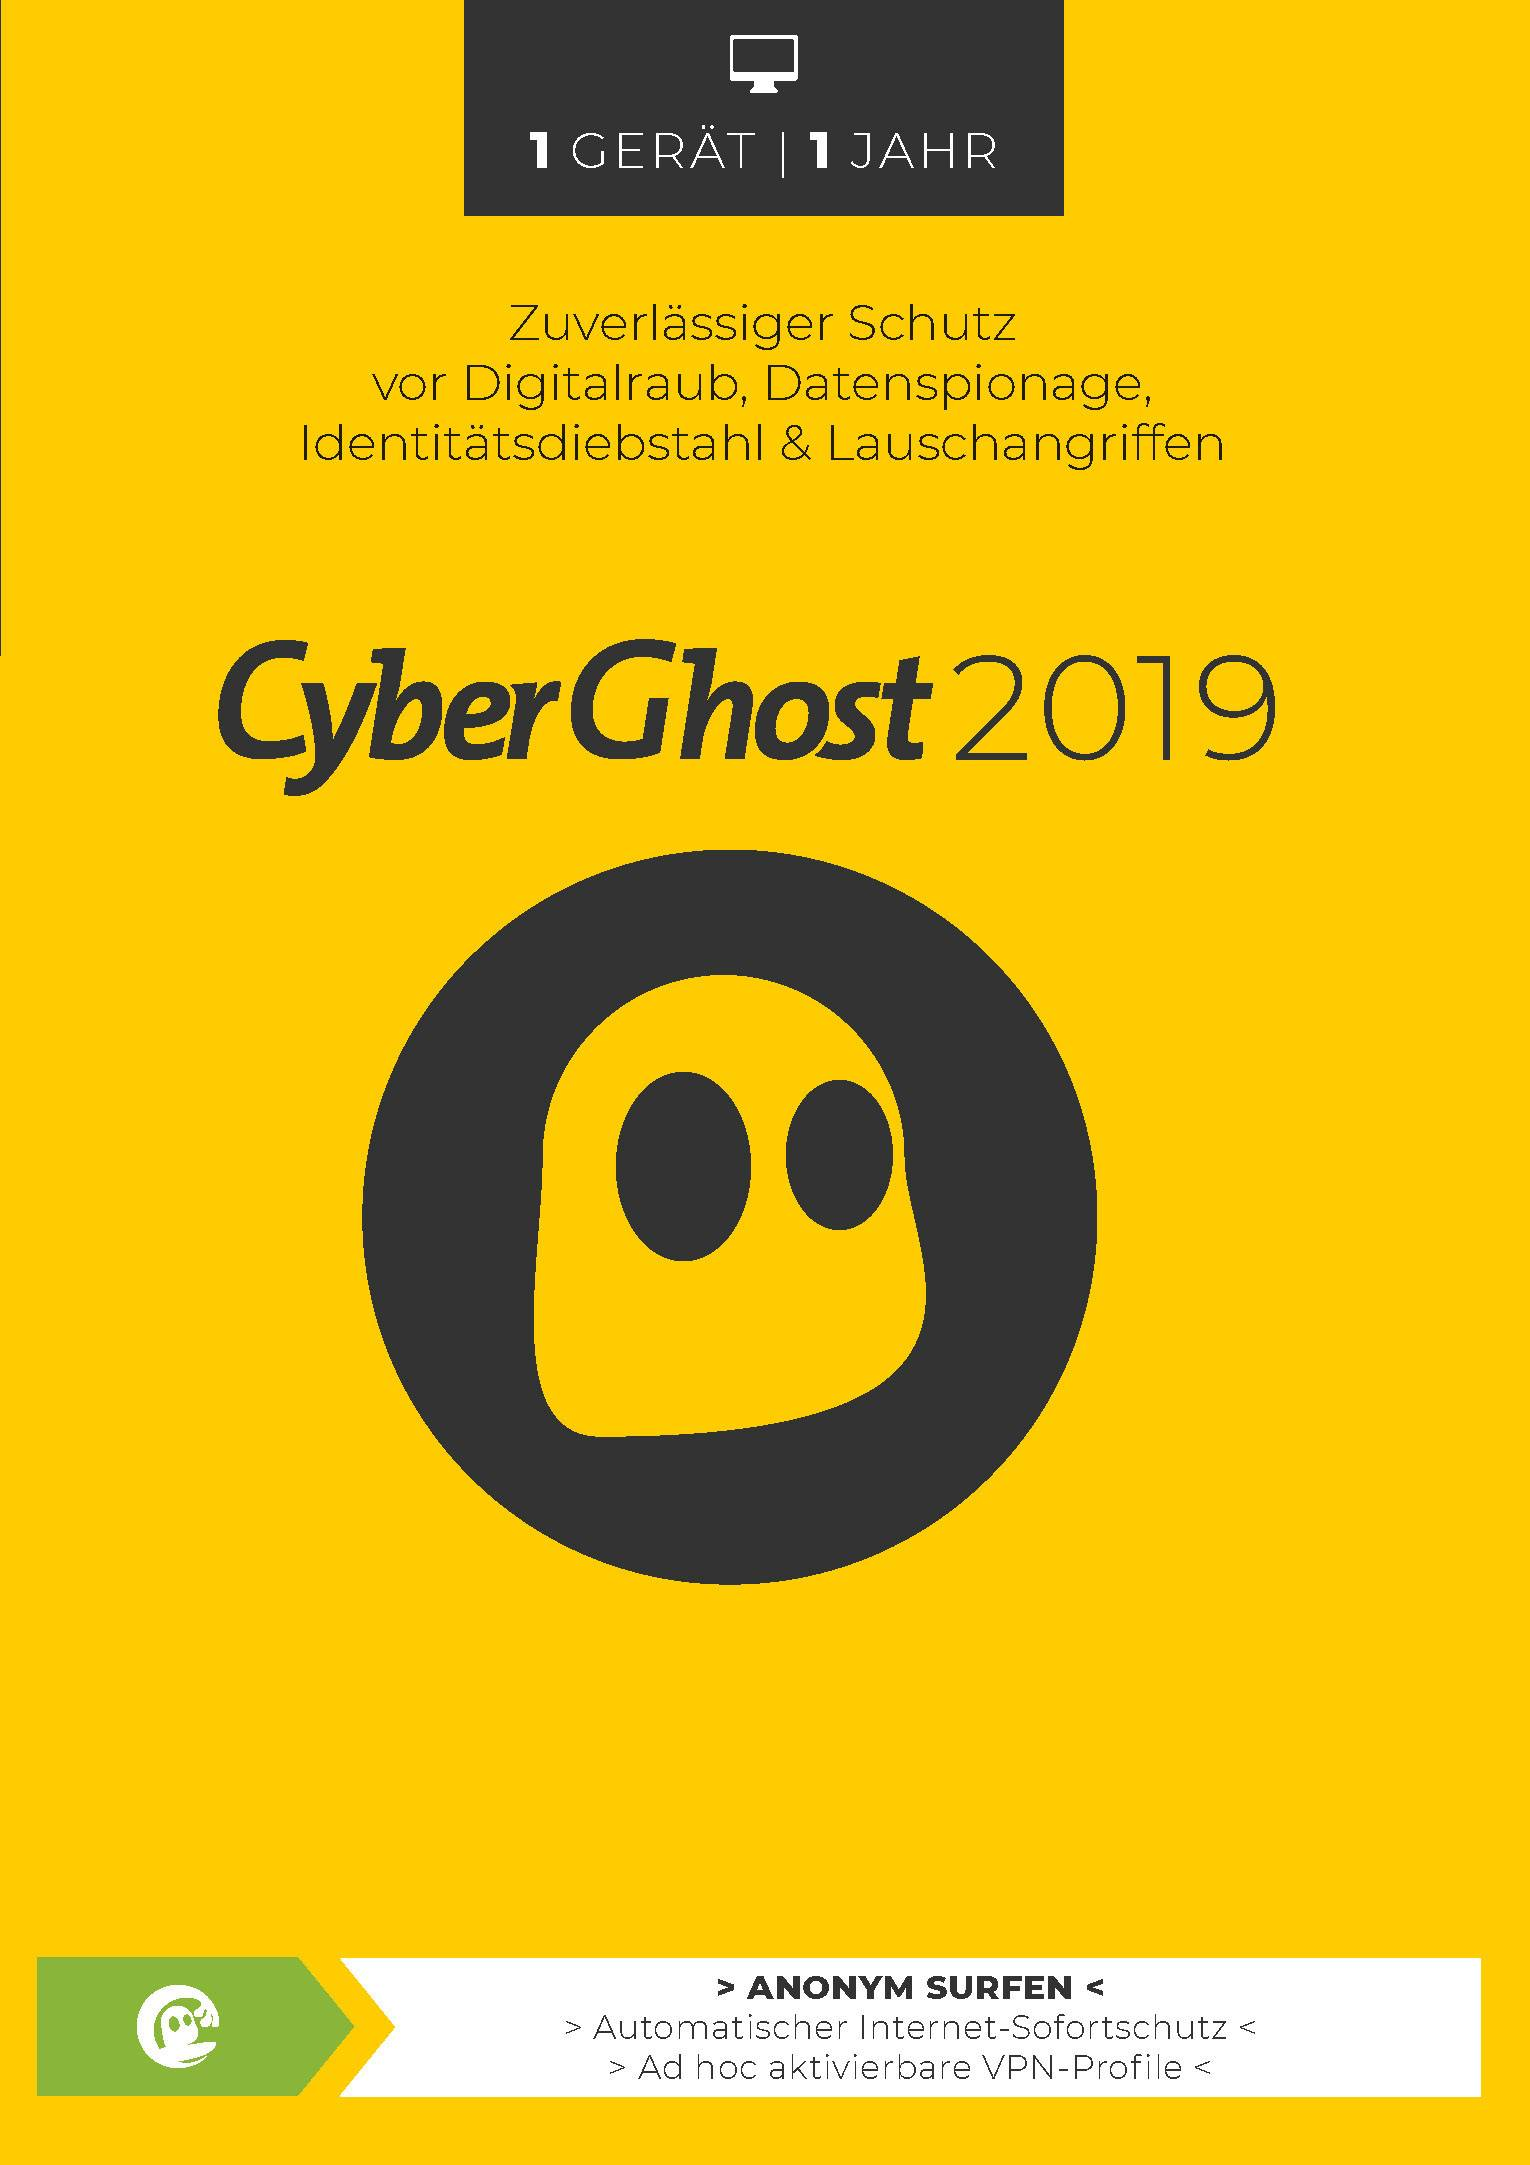 CyberGhost Full version, 1 license Windows, iOS, Android